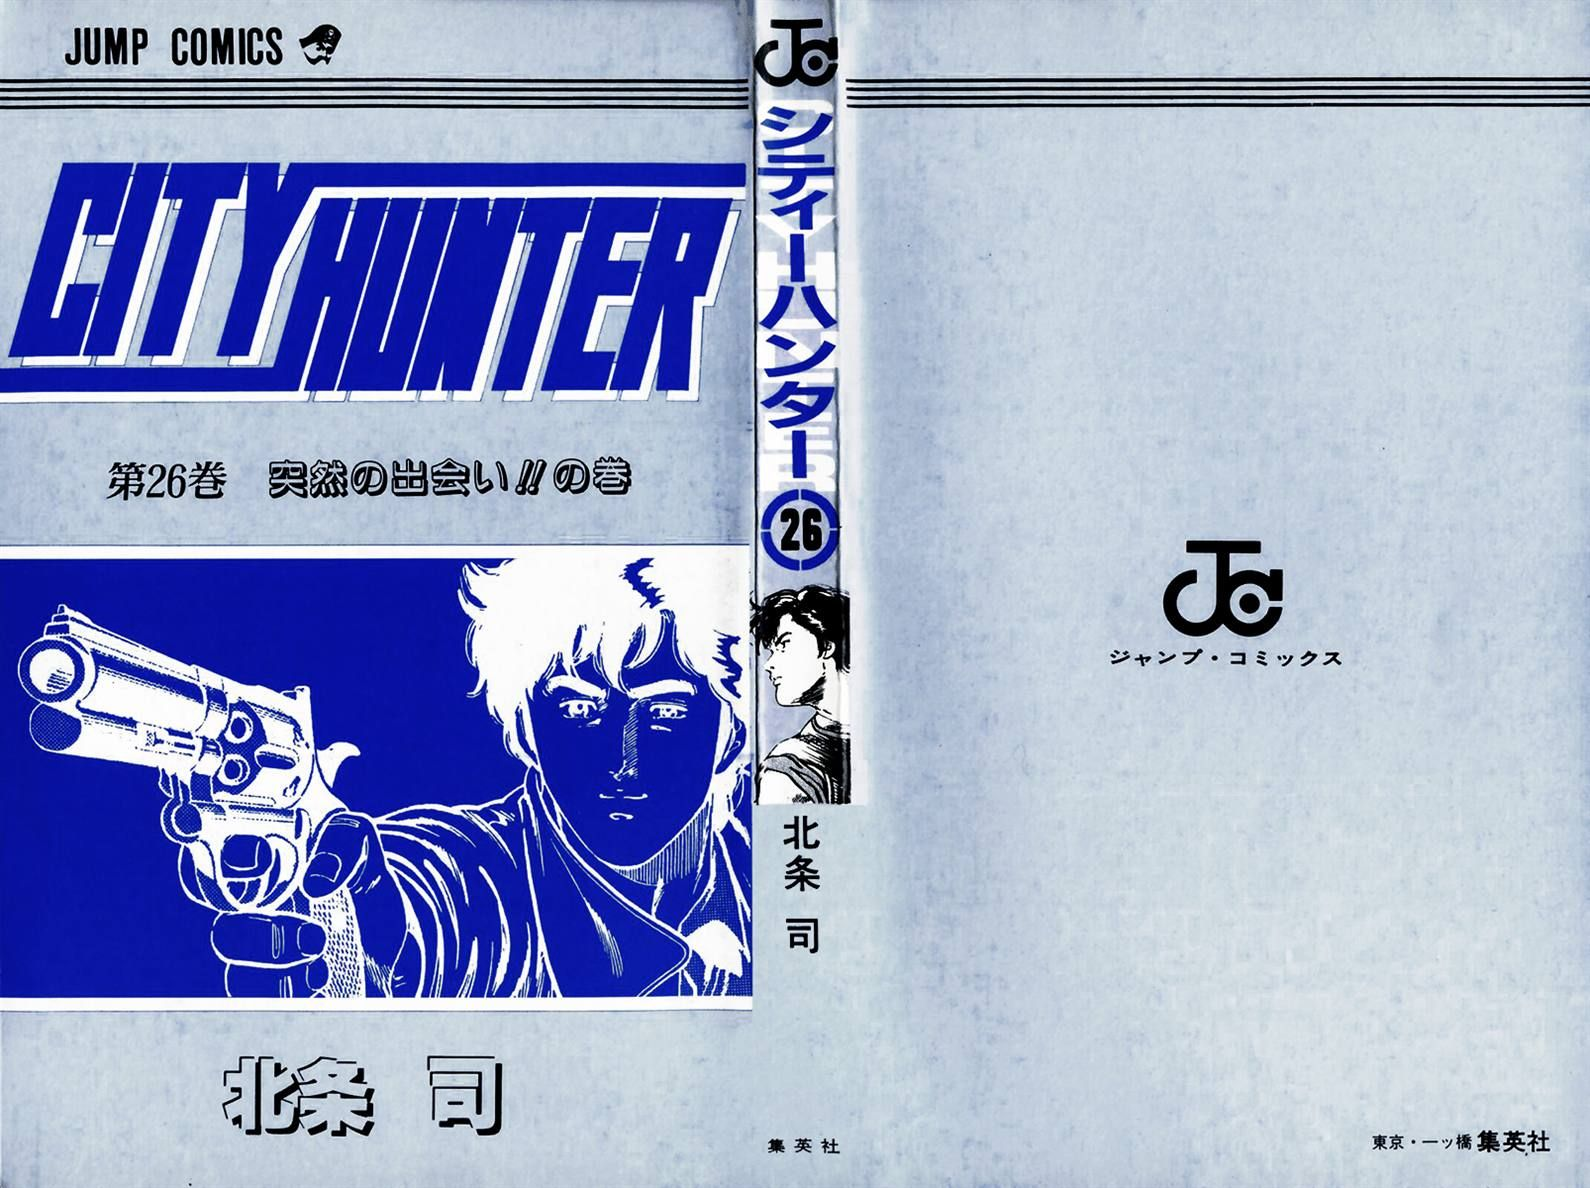 City Hunter 134 Page 2